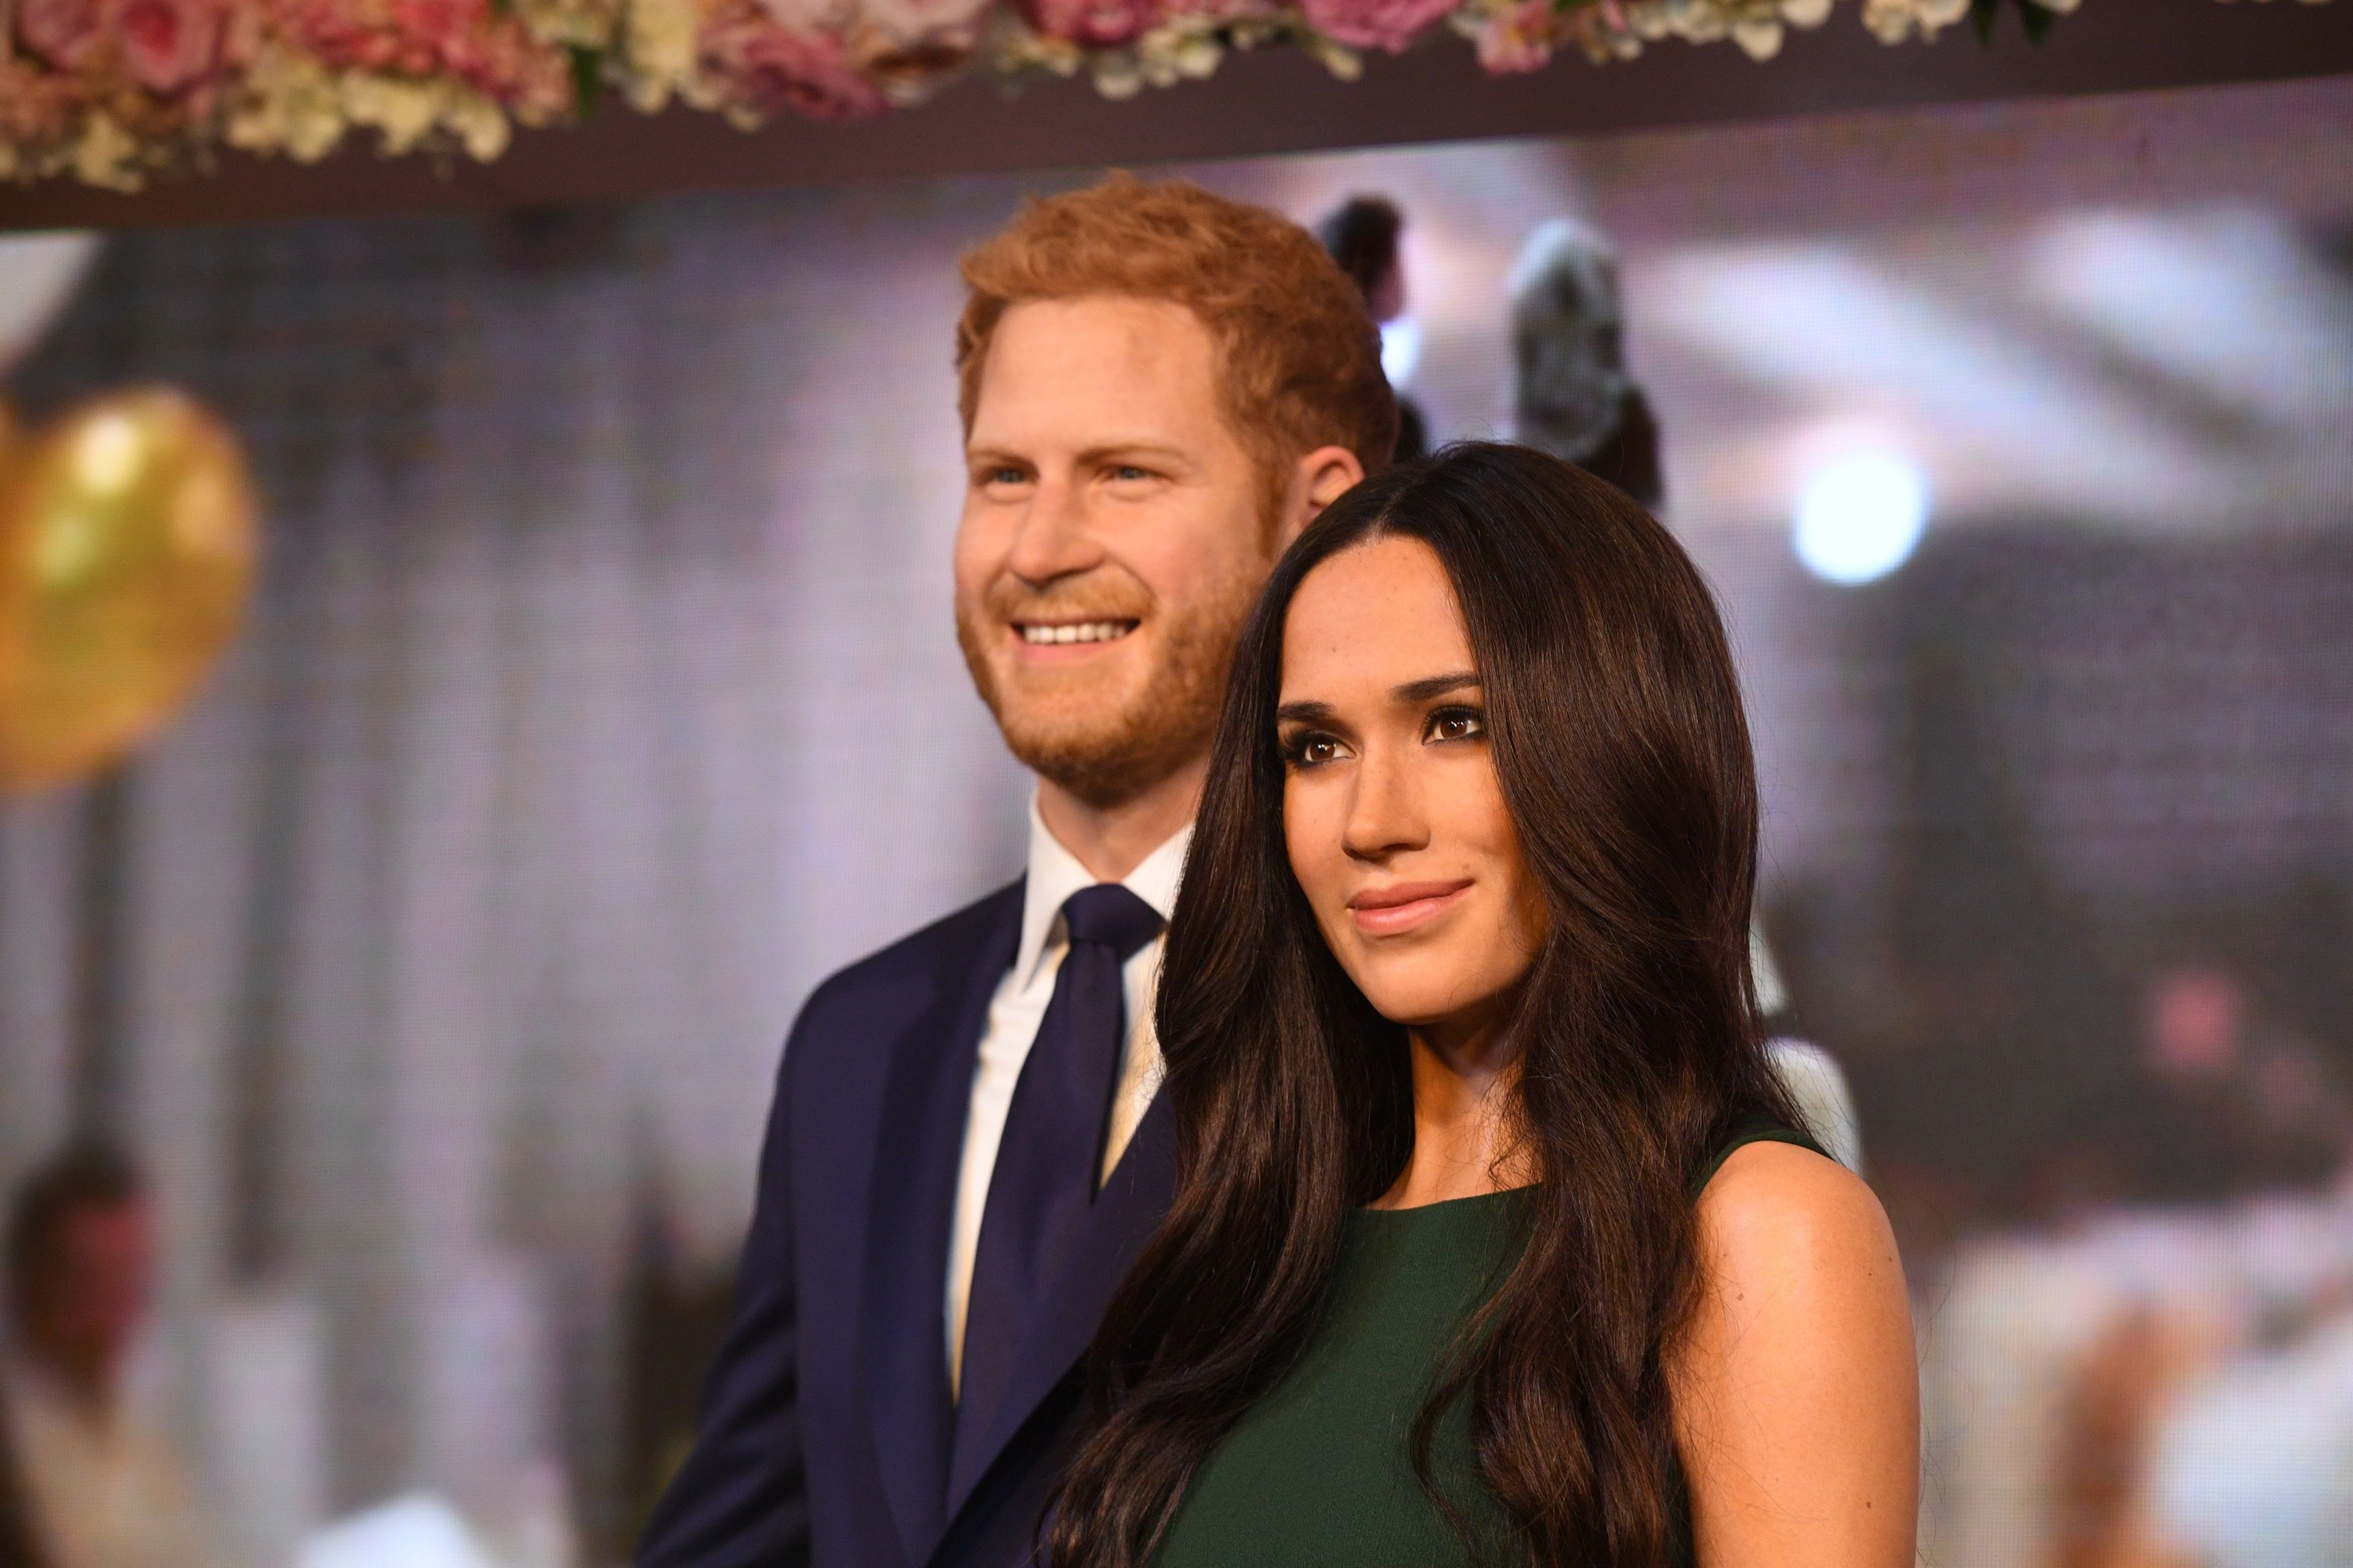 Royal wedding: Meghan Markle waxwork unveiled at Madame Tussauds